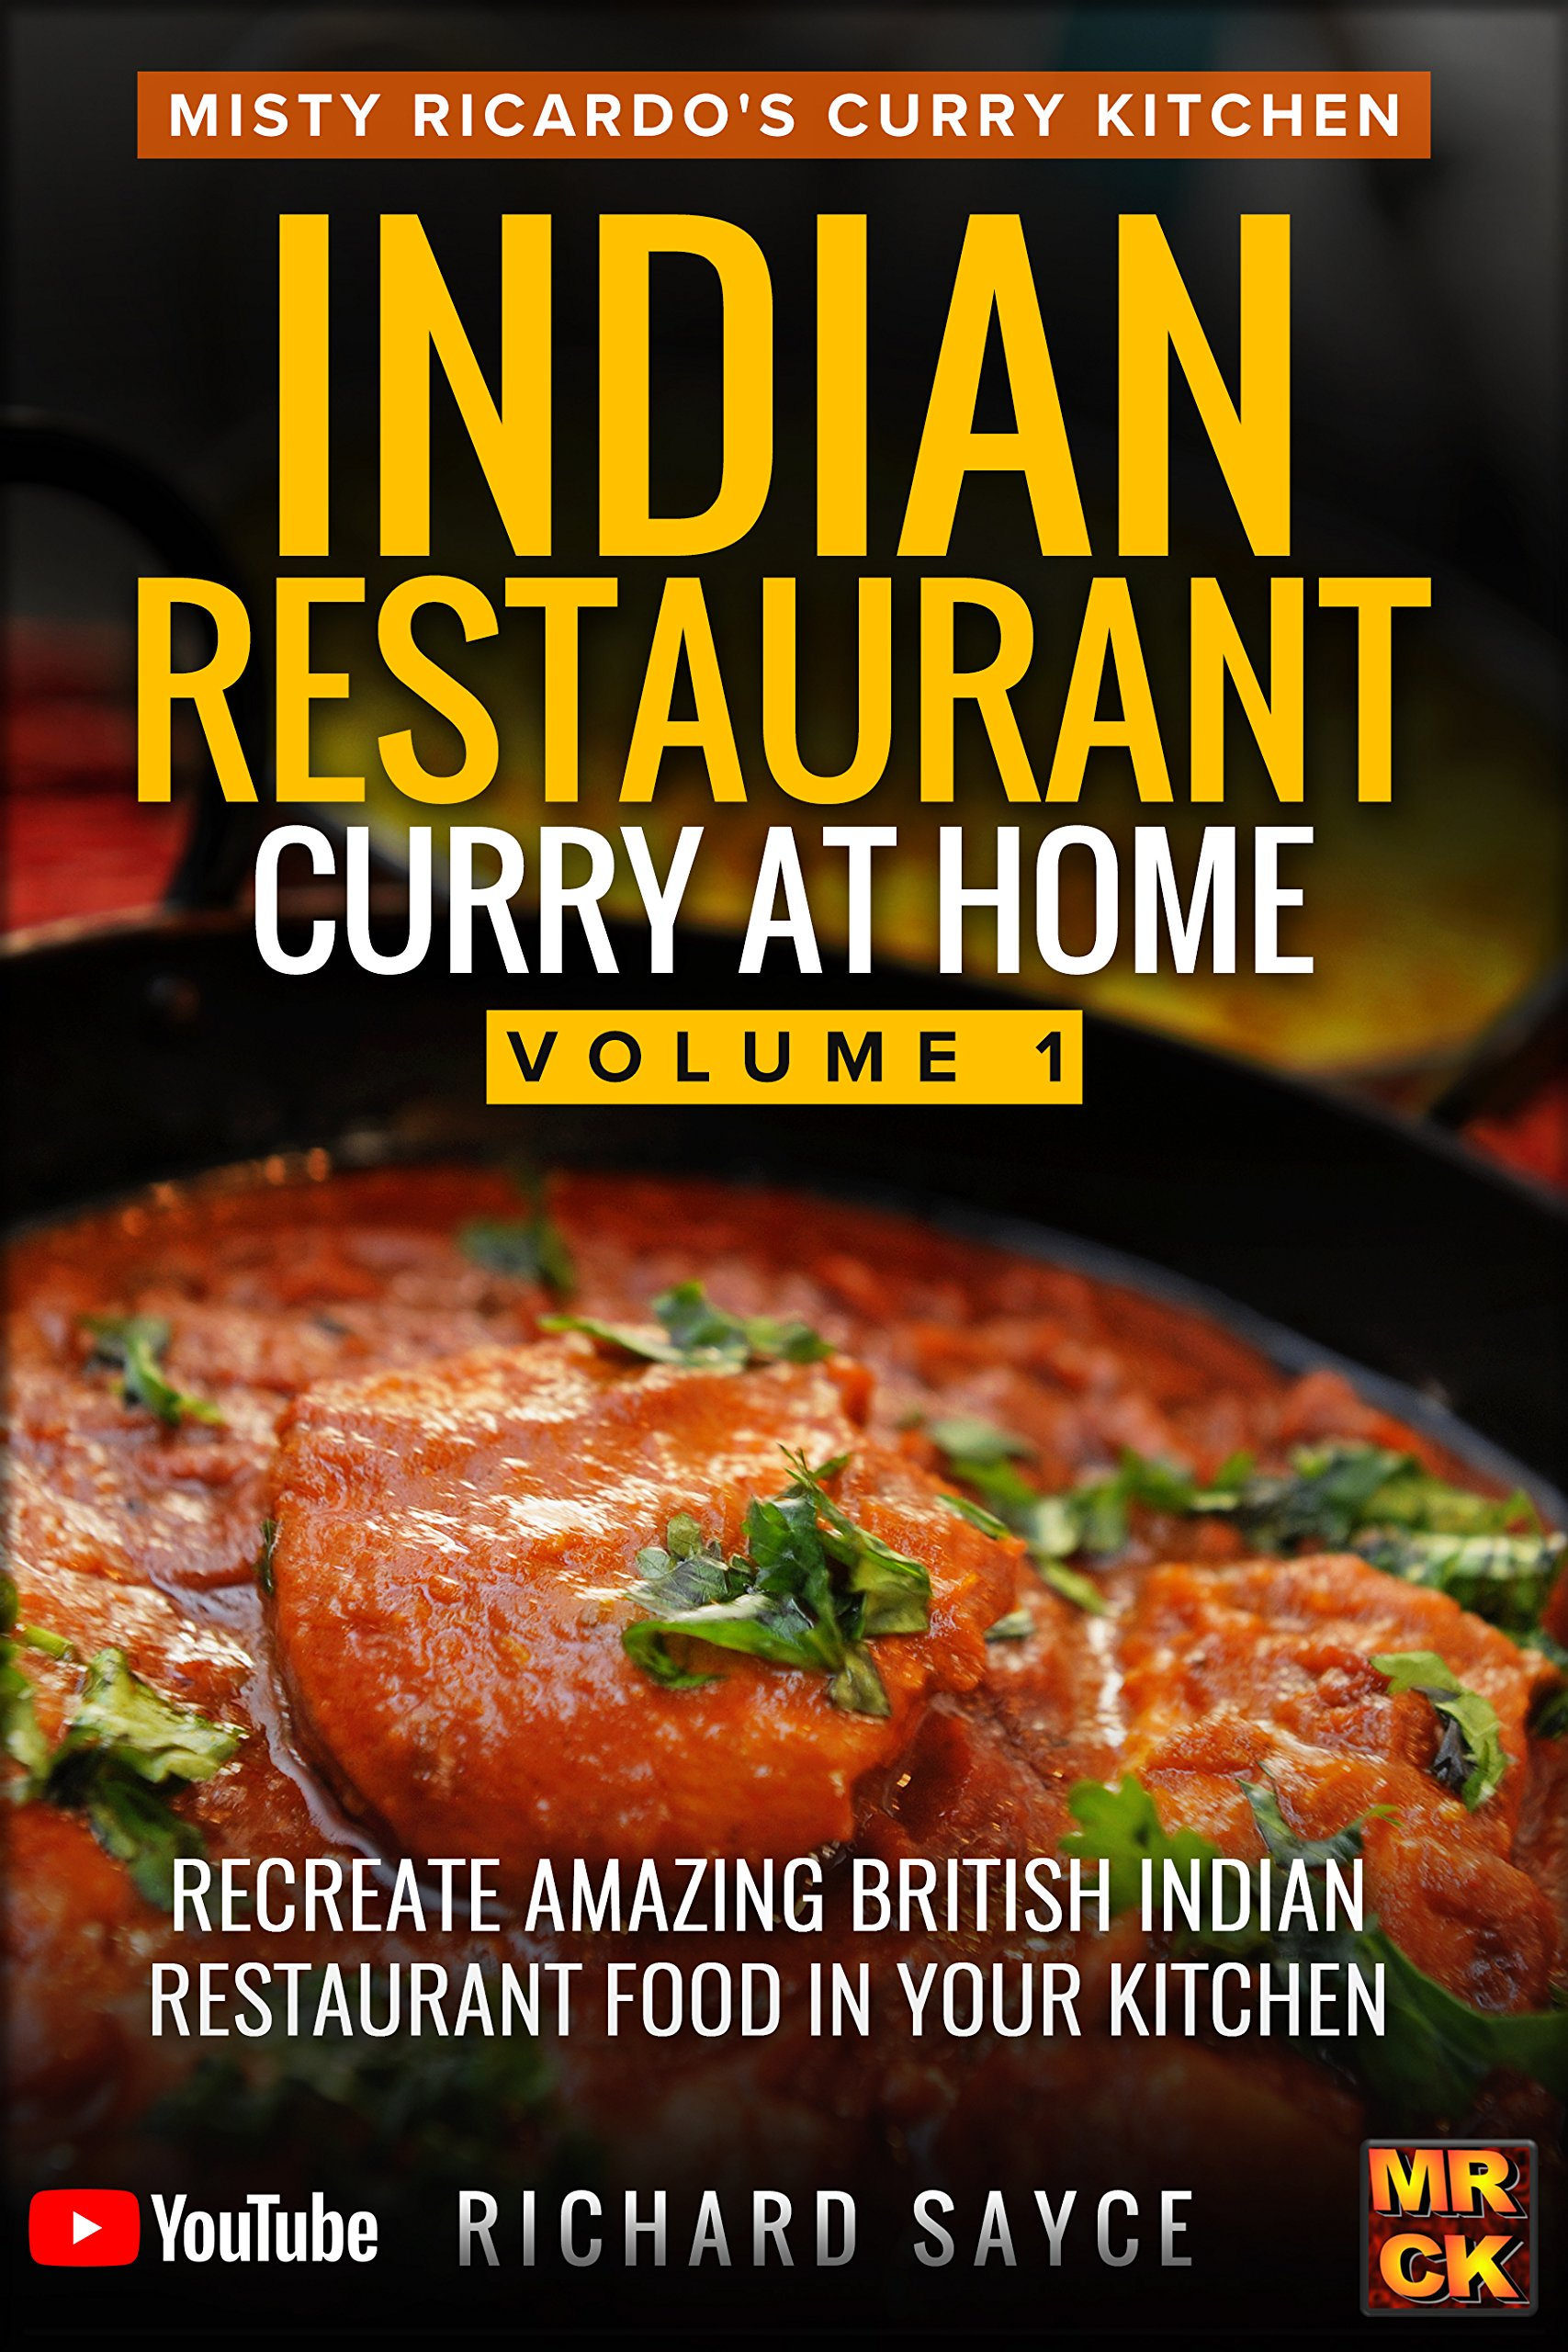 Indian Restaurant Curry at Home Volume 1: Misty Ricardo's Curry Kitchen 8